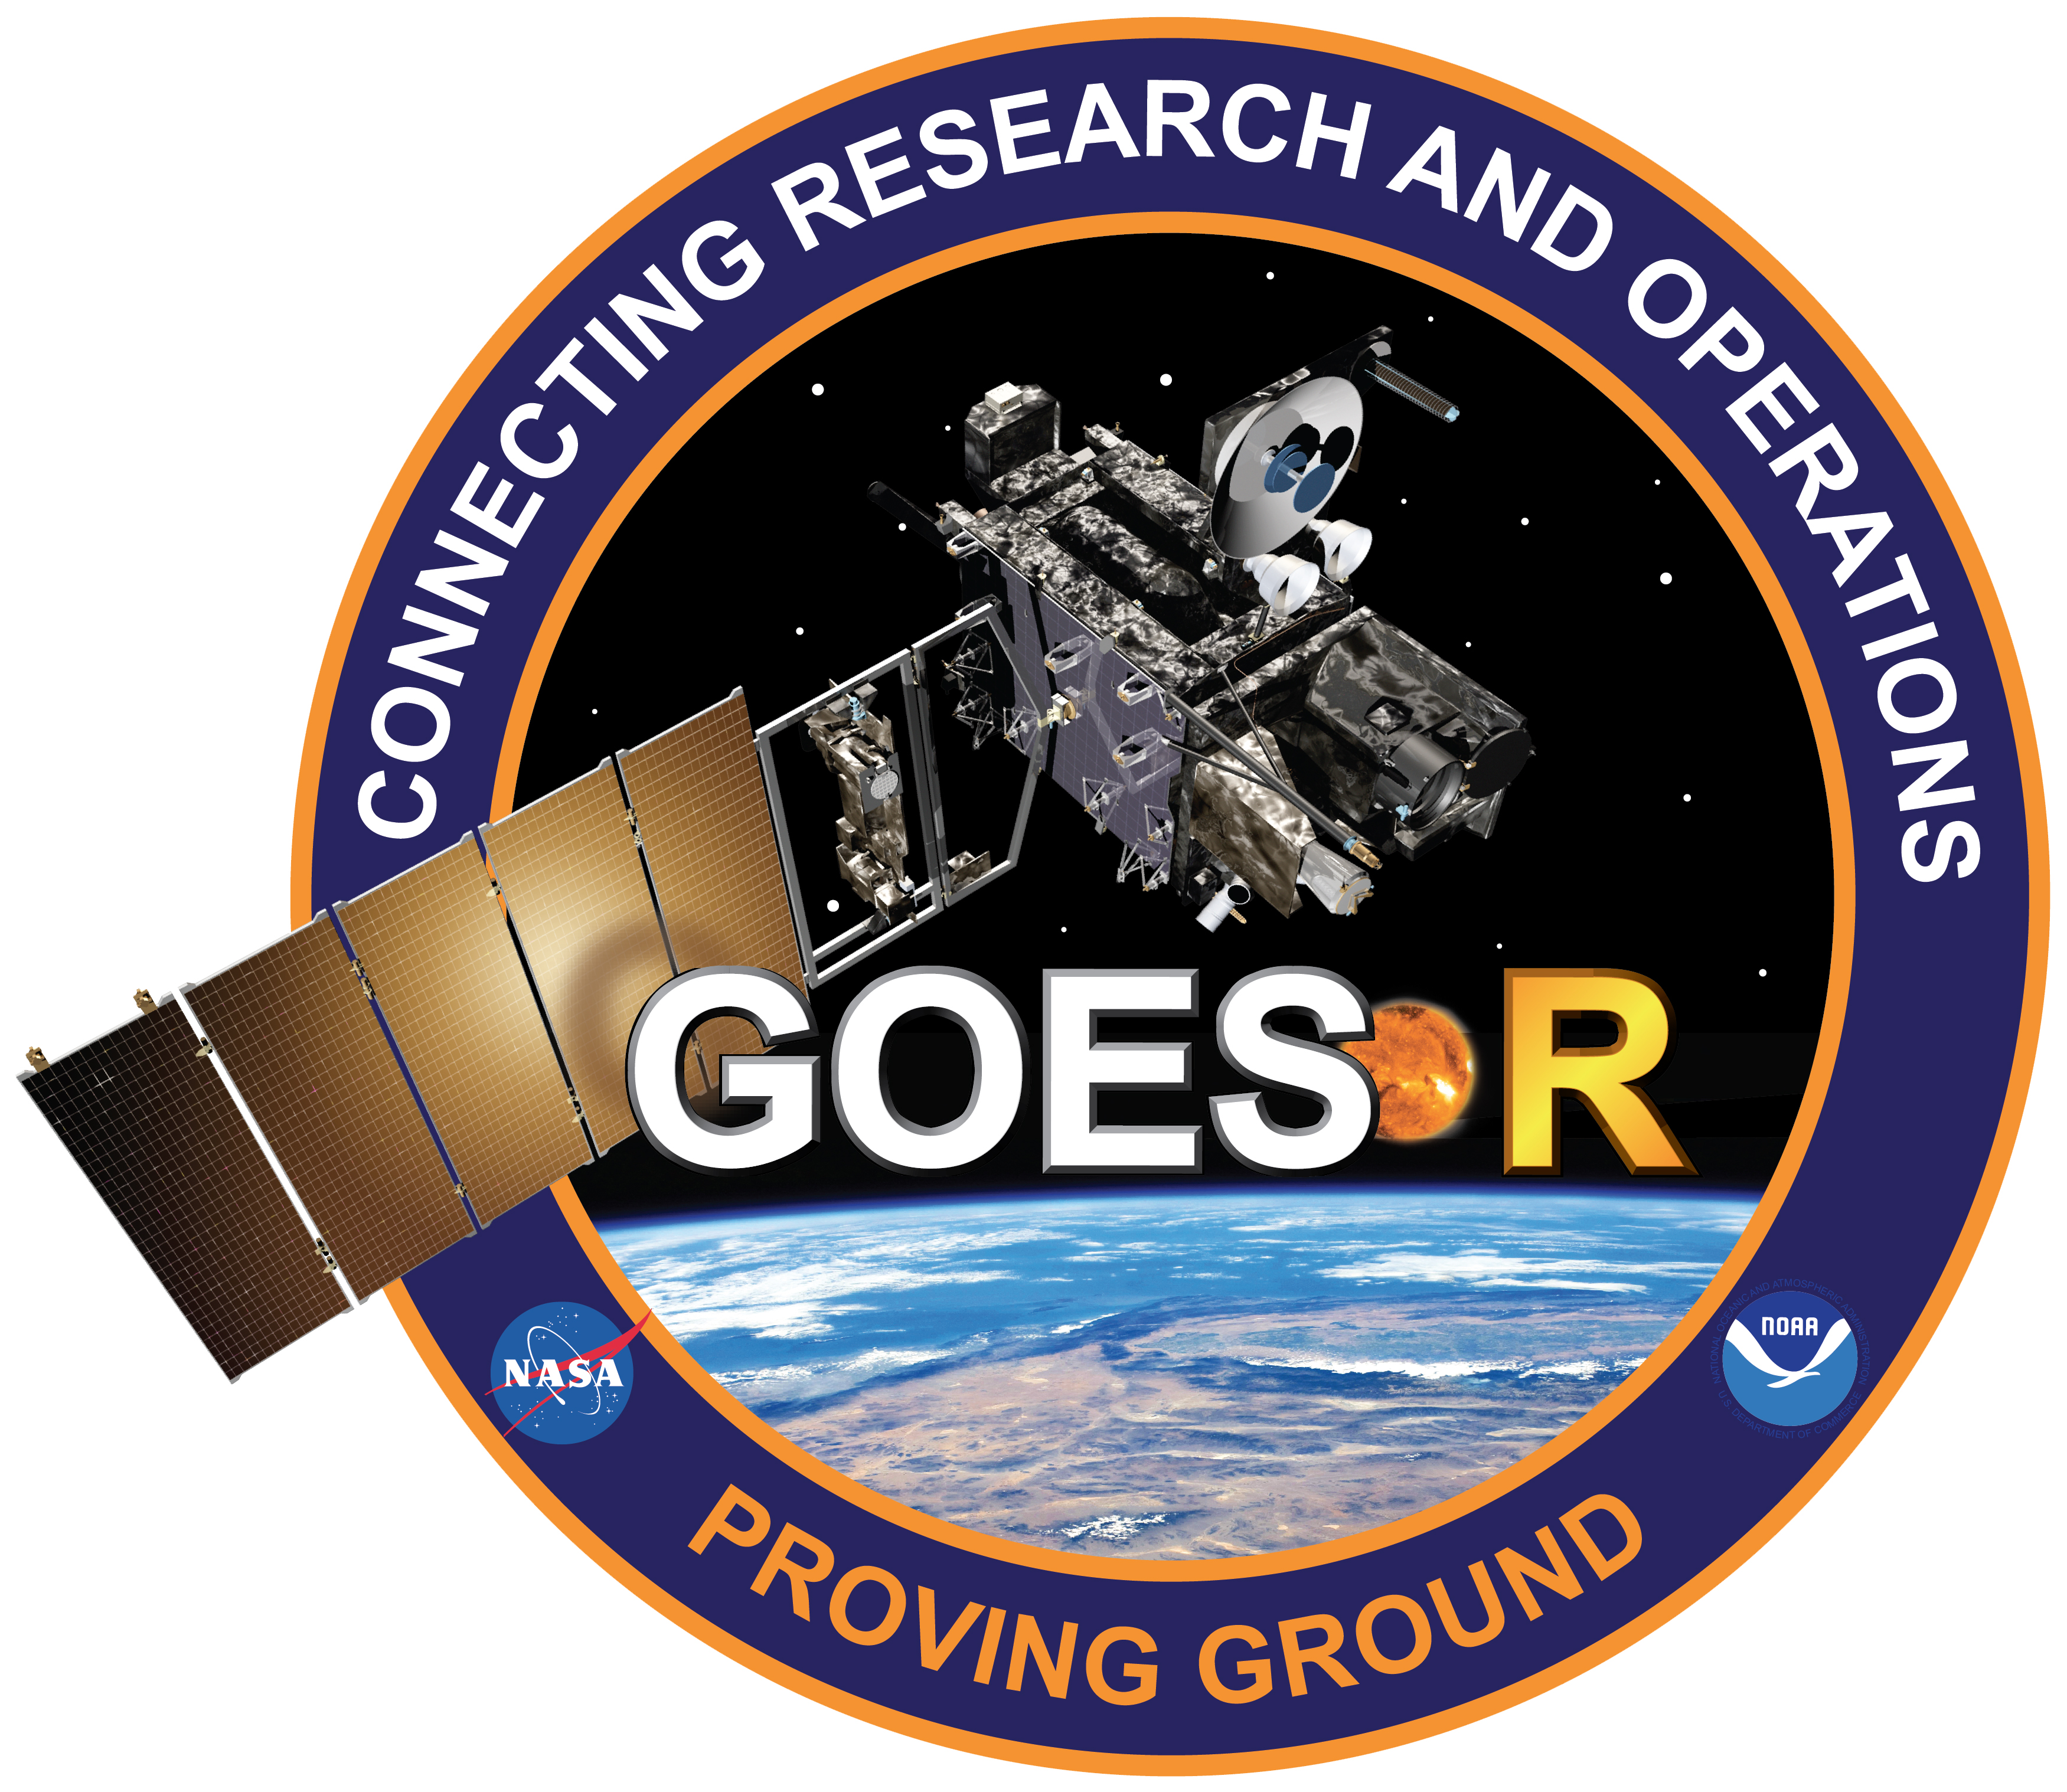 GOES-R Proving Ground Decal - Goes PNG